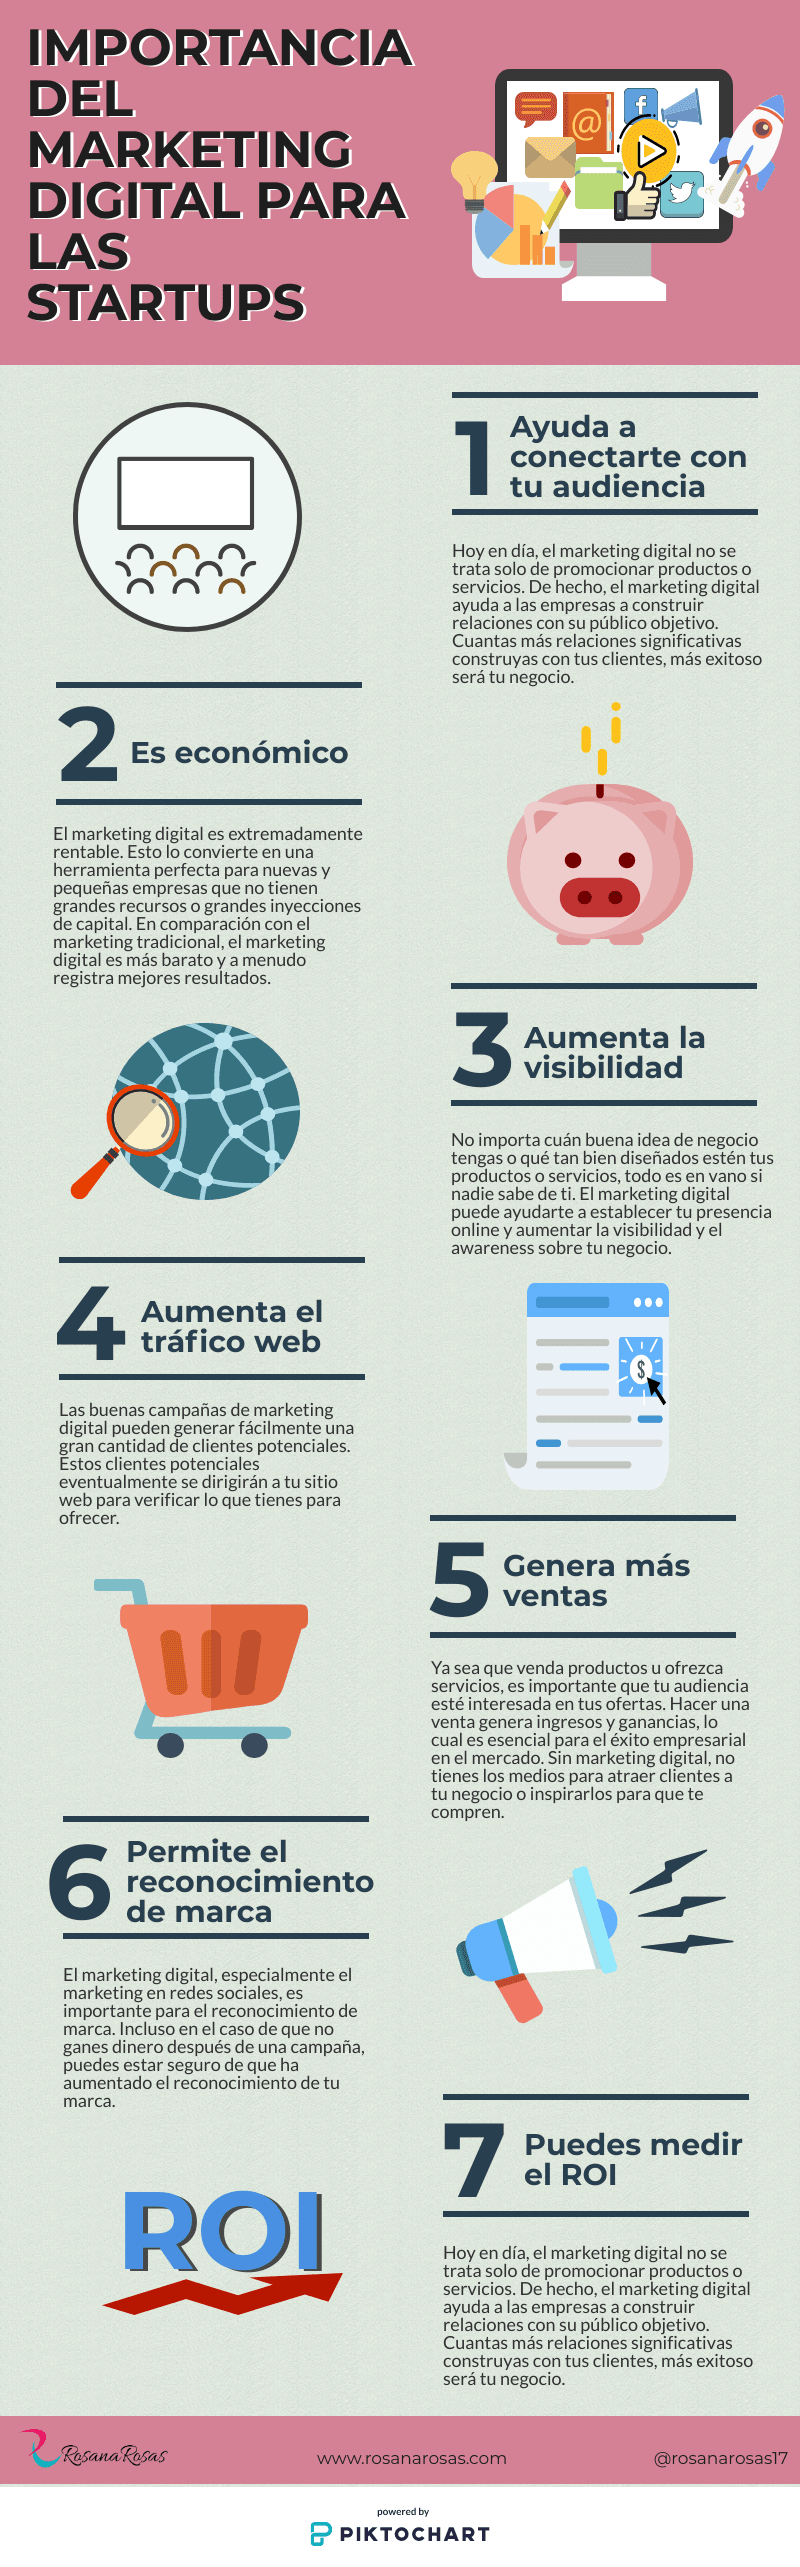 Importancia del marketing digital para las startups